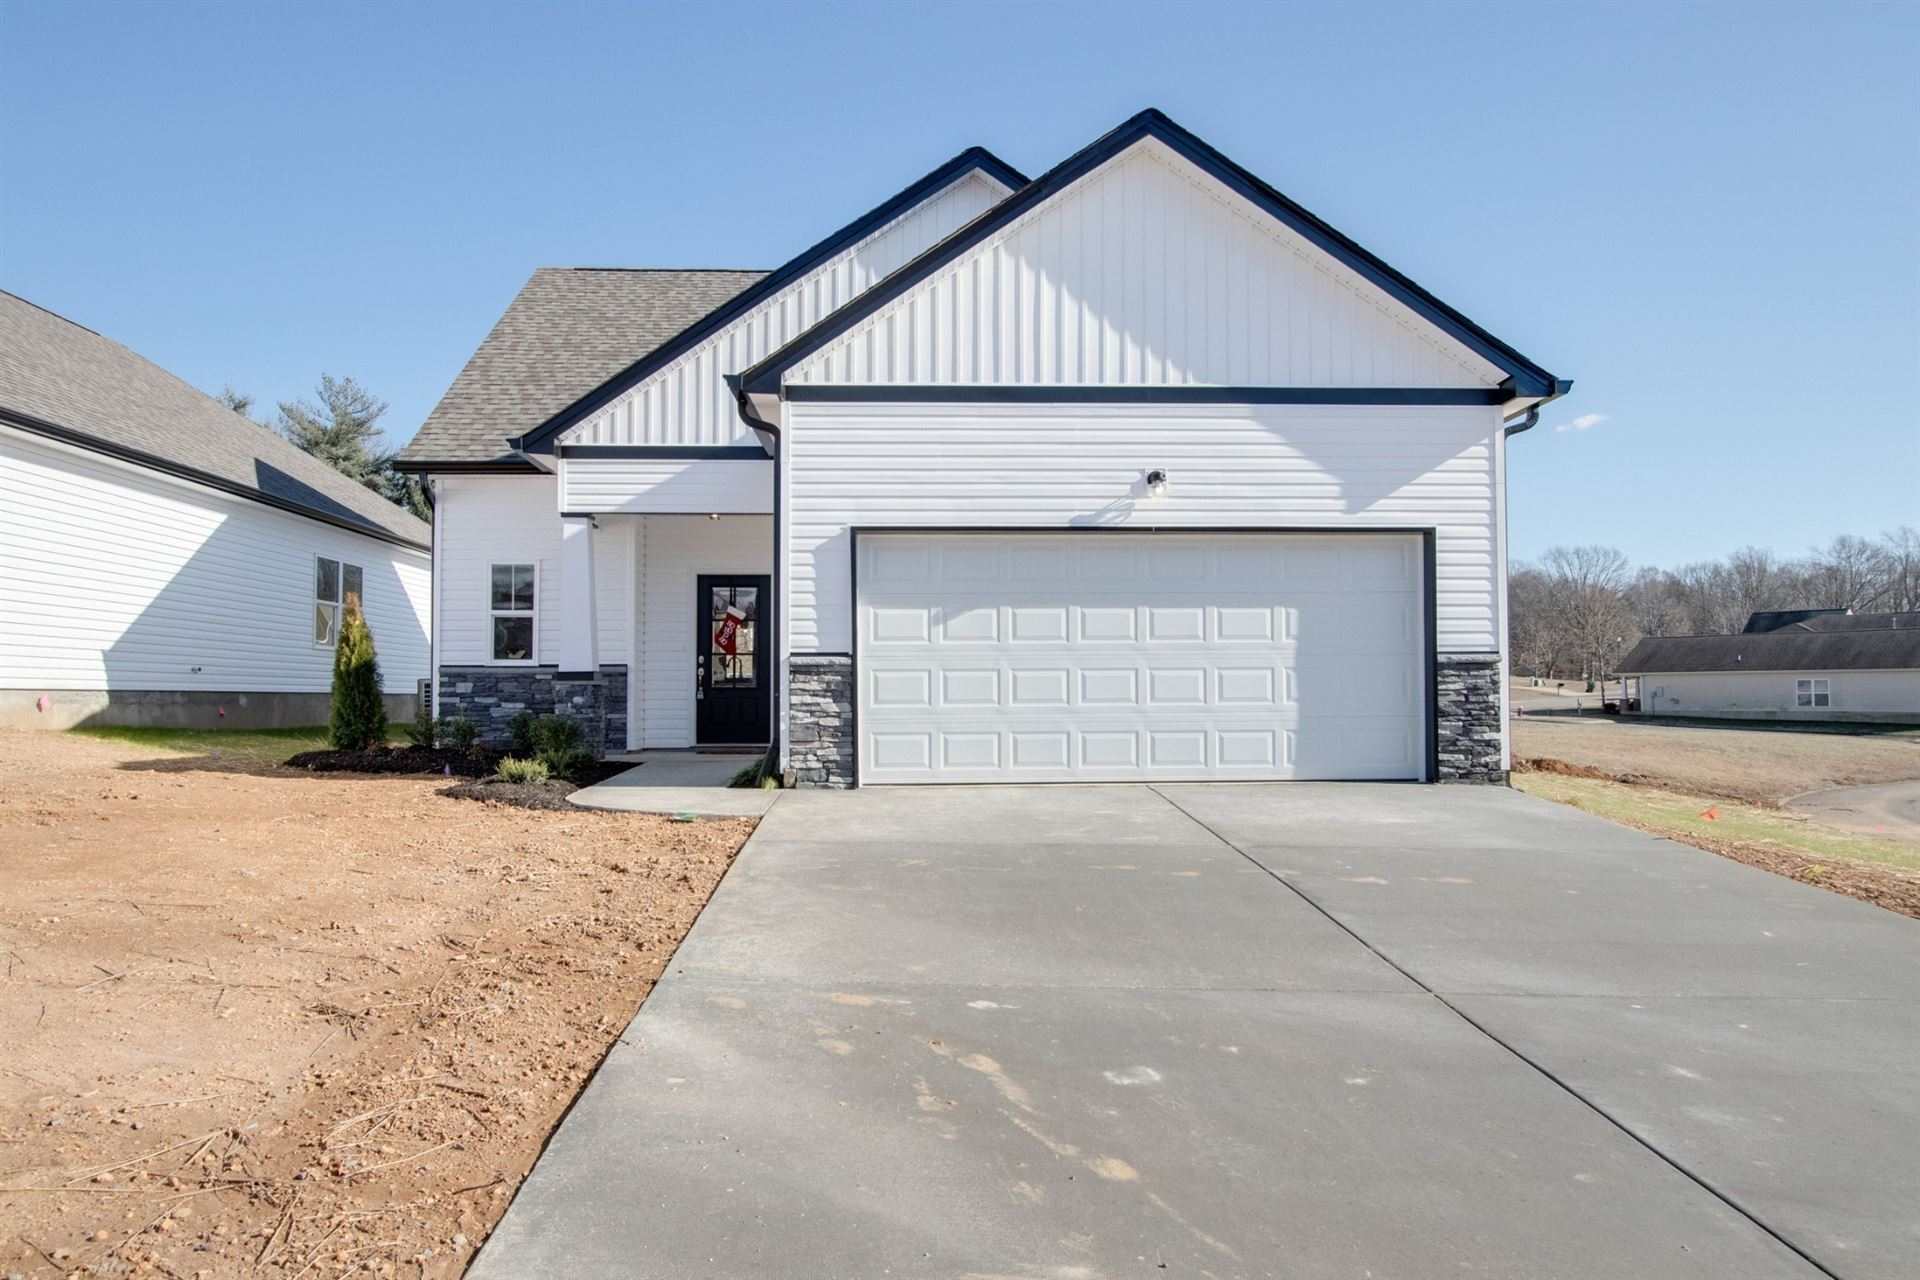 2 Faye Alley, Springfield, TN 37172 - MLS#: 2252144